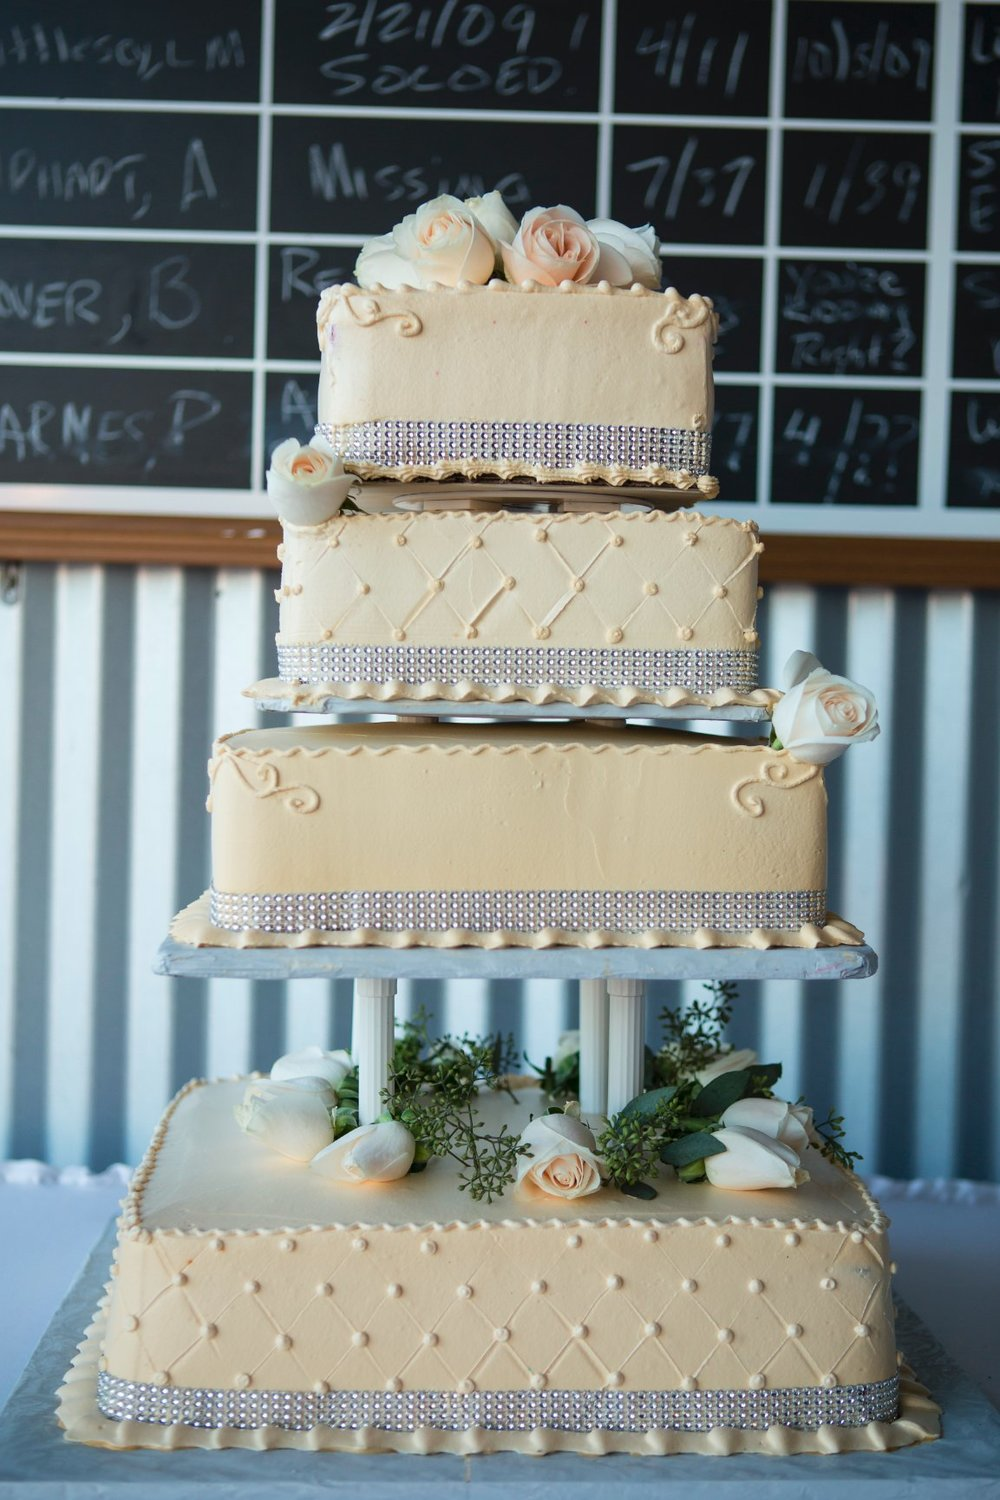 Classic tiered design with elegant ivory fondant and fresh roses. The sparkling crystal studded ribbon and tall columns gives this cake a regal feel. Cake by Ruby Carreon.